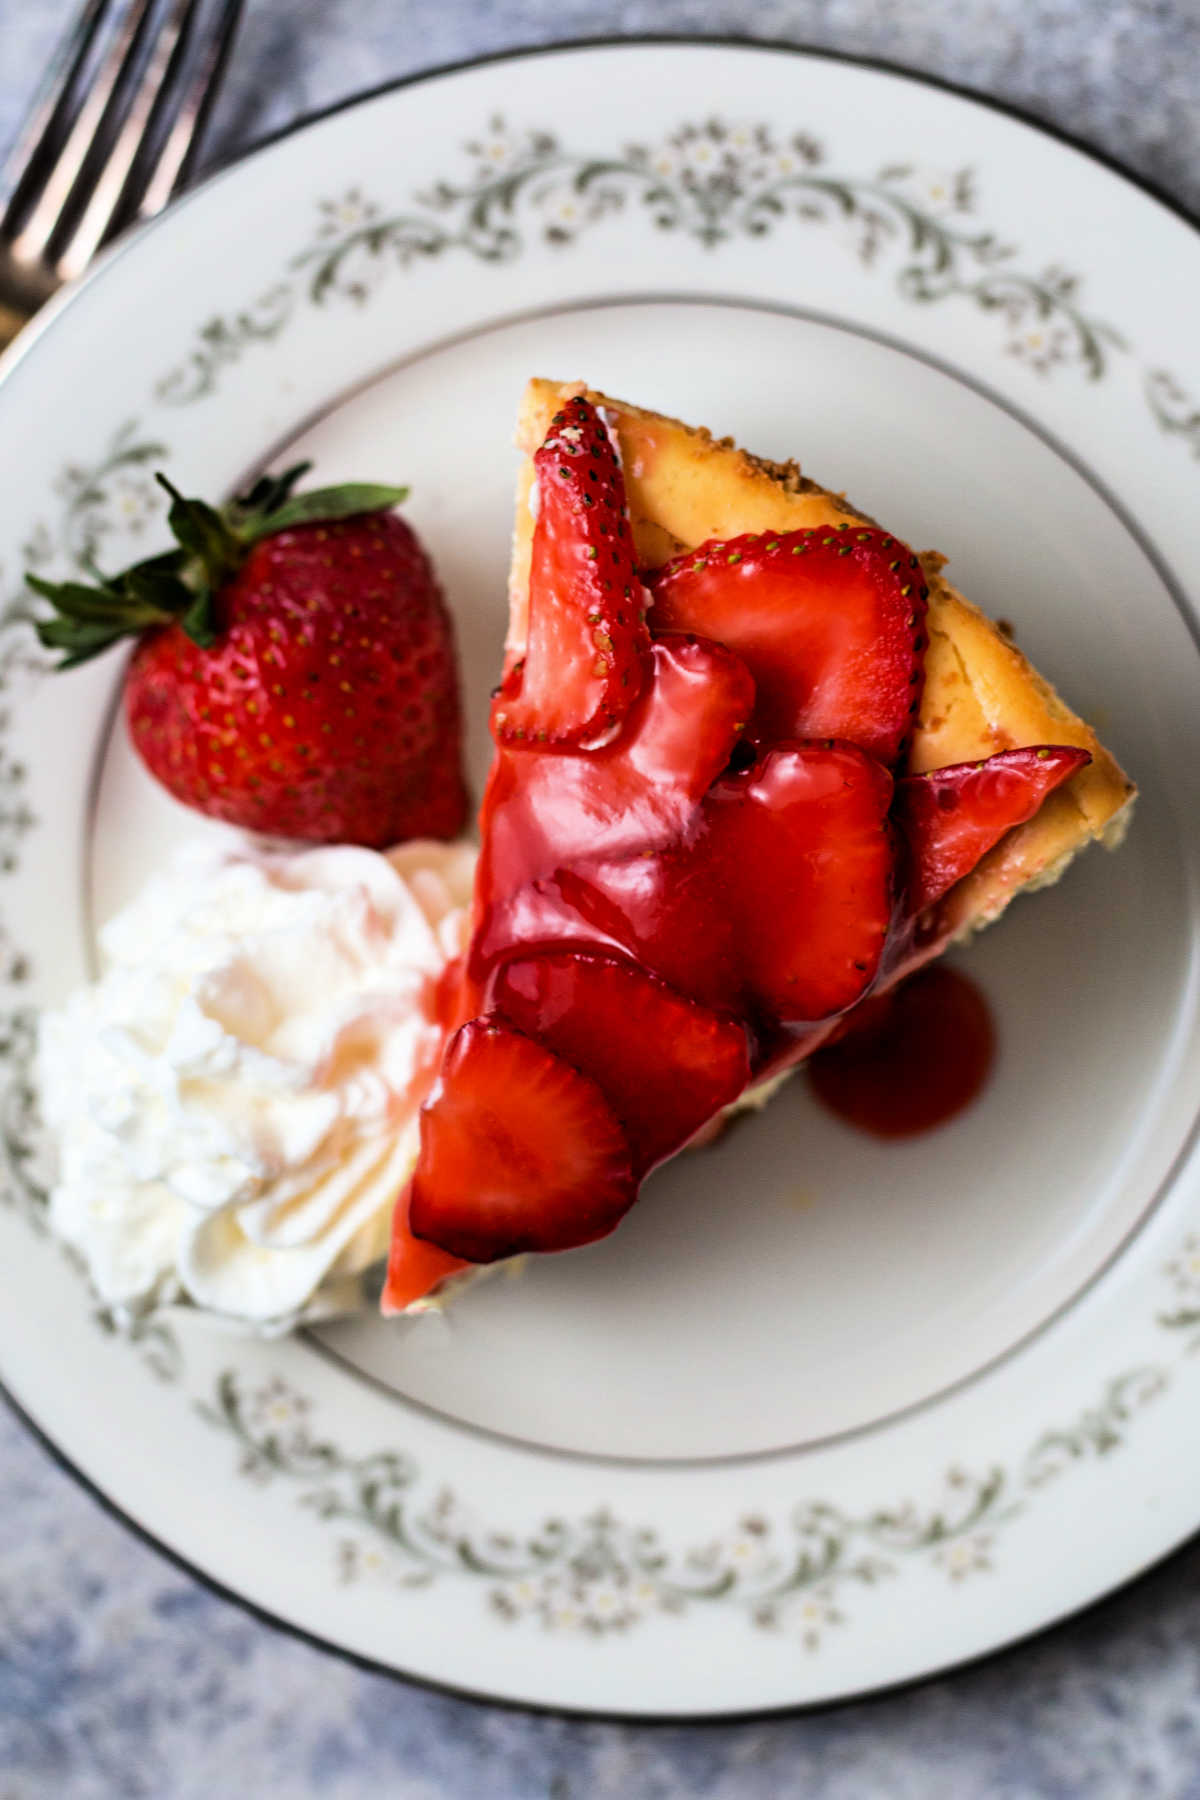 top down view of a slice of strawberry cheesecake on a china plate with a mound of whipped cream on the side.